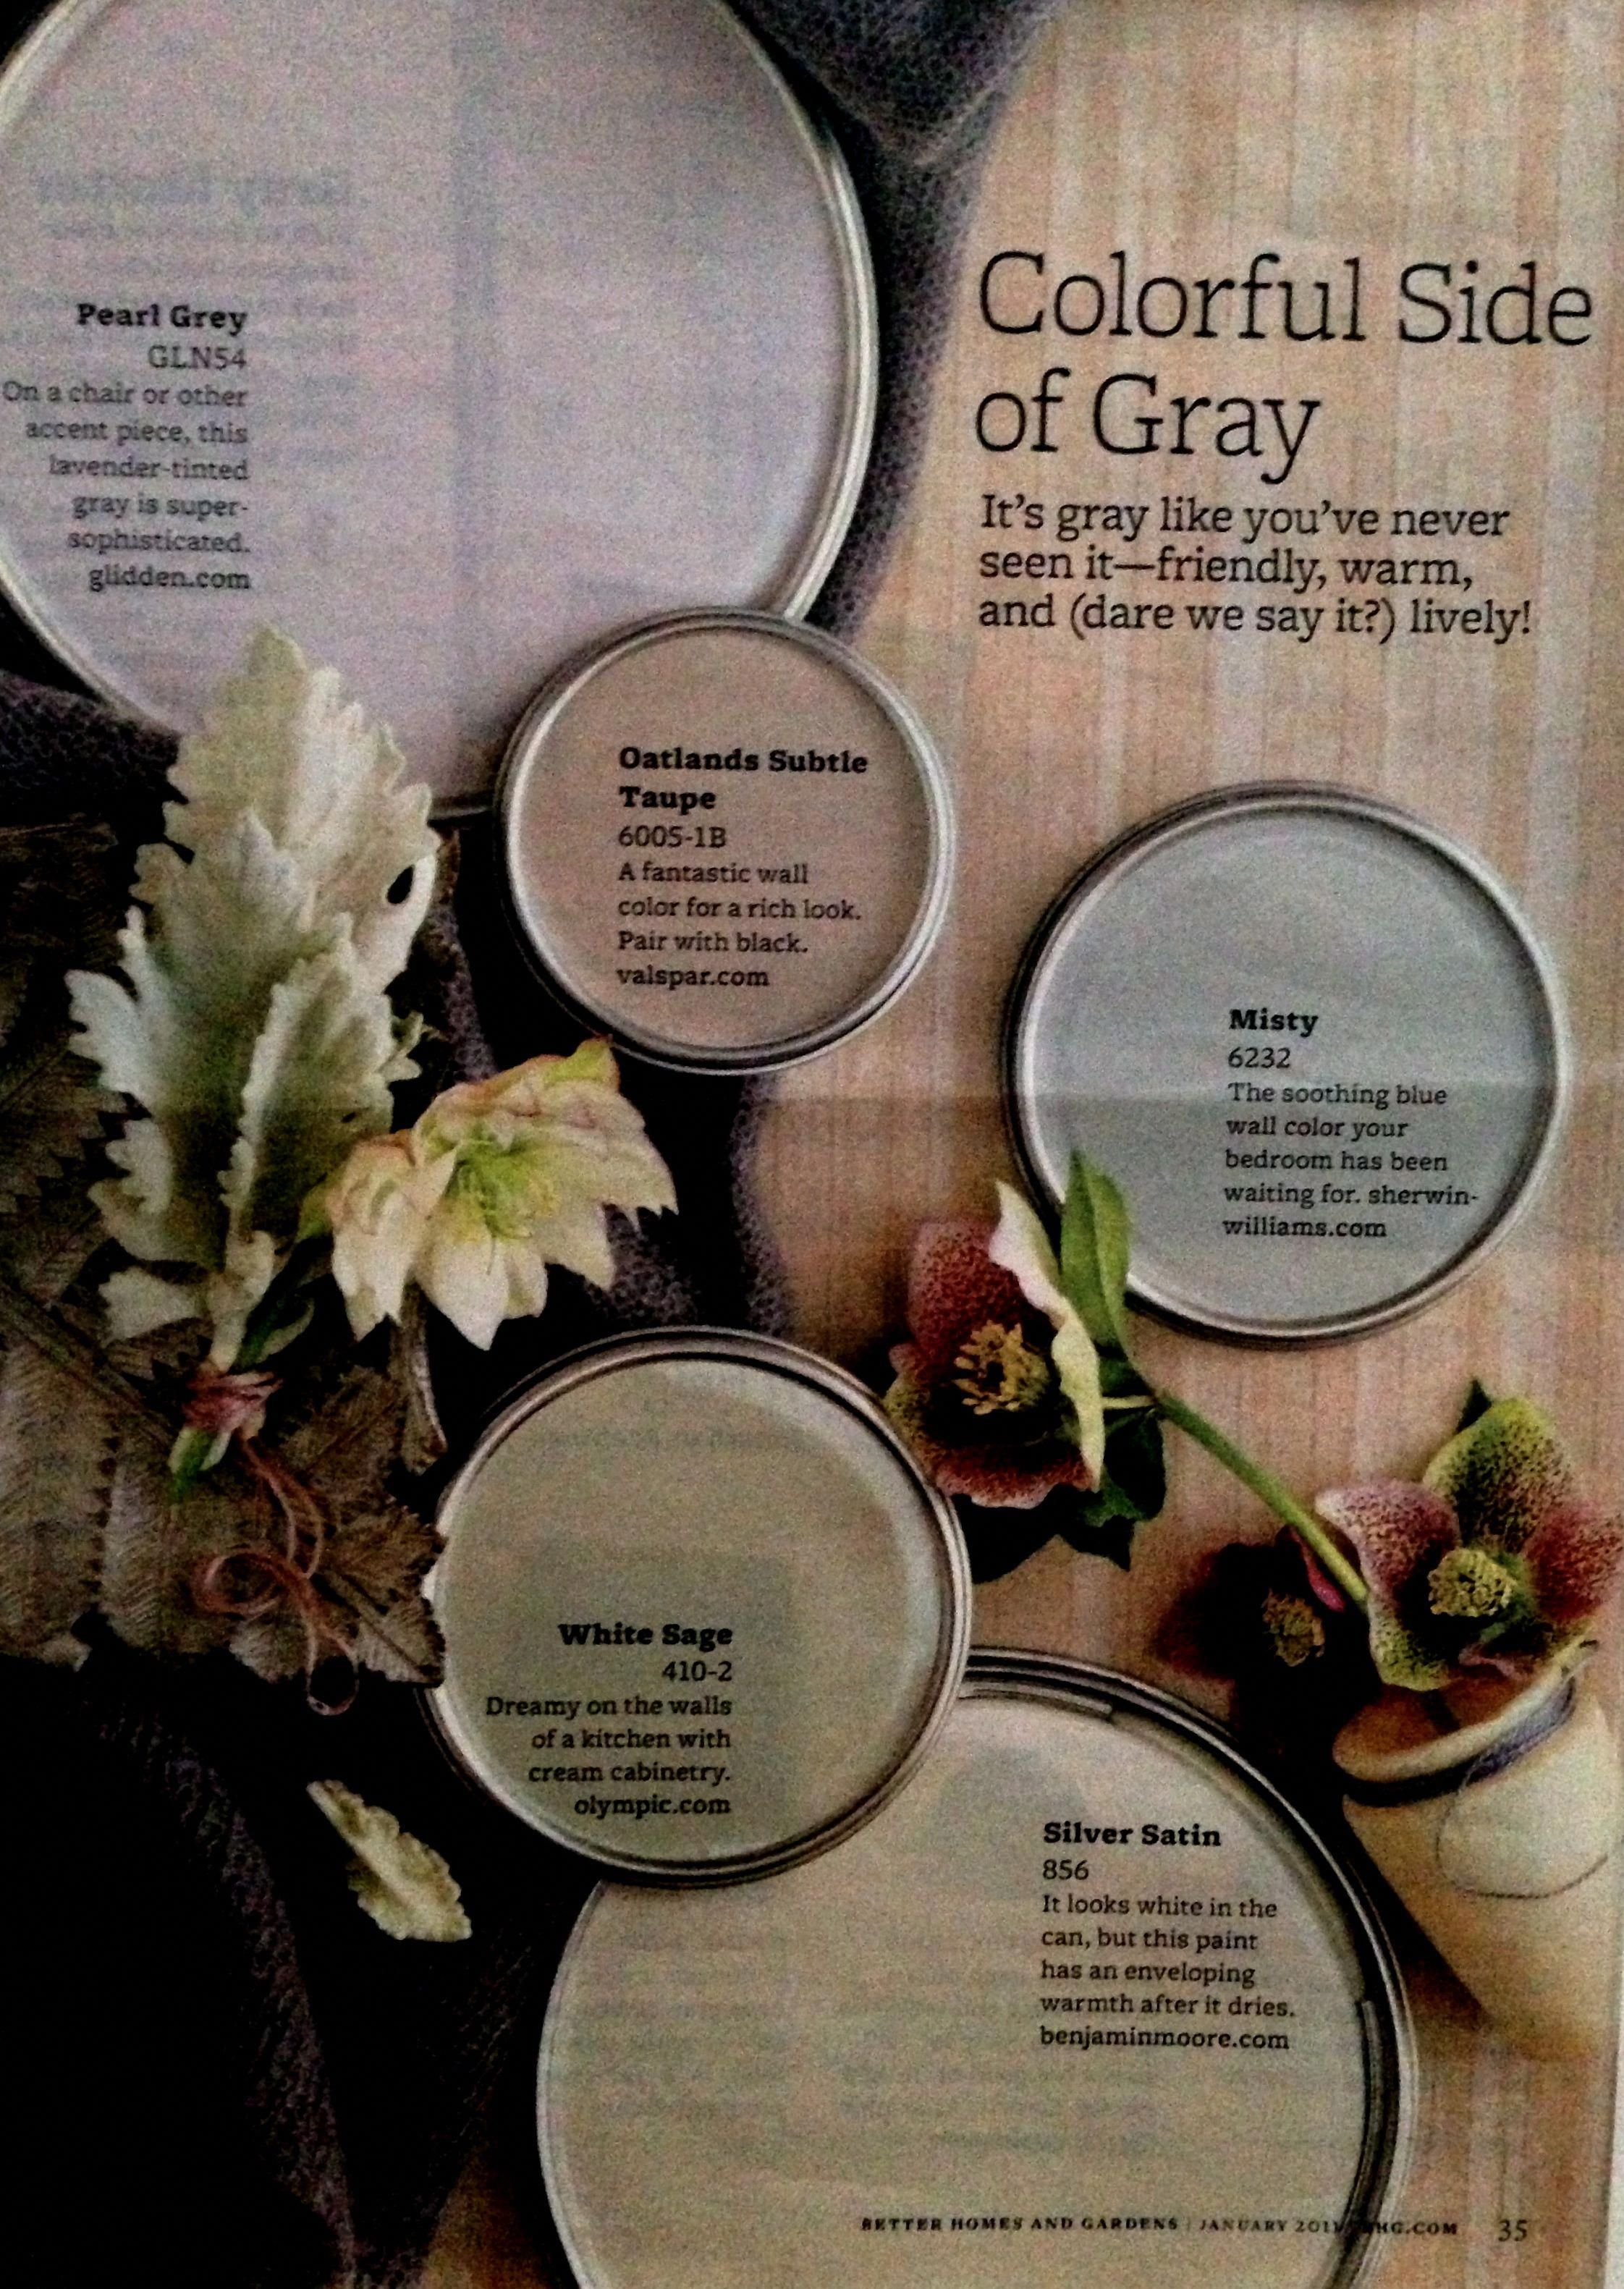 340f0e7c956405baa64ff83f91a9a152 - Better Homes And Gardens Color Palettes